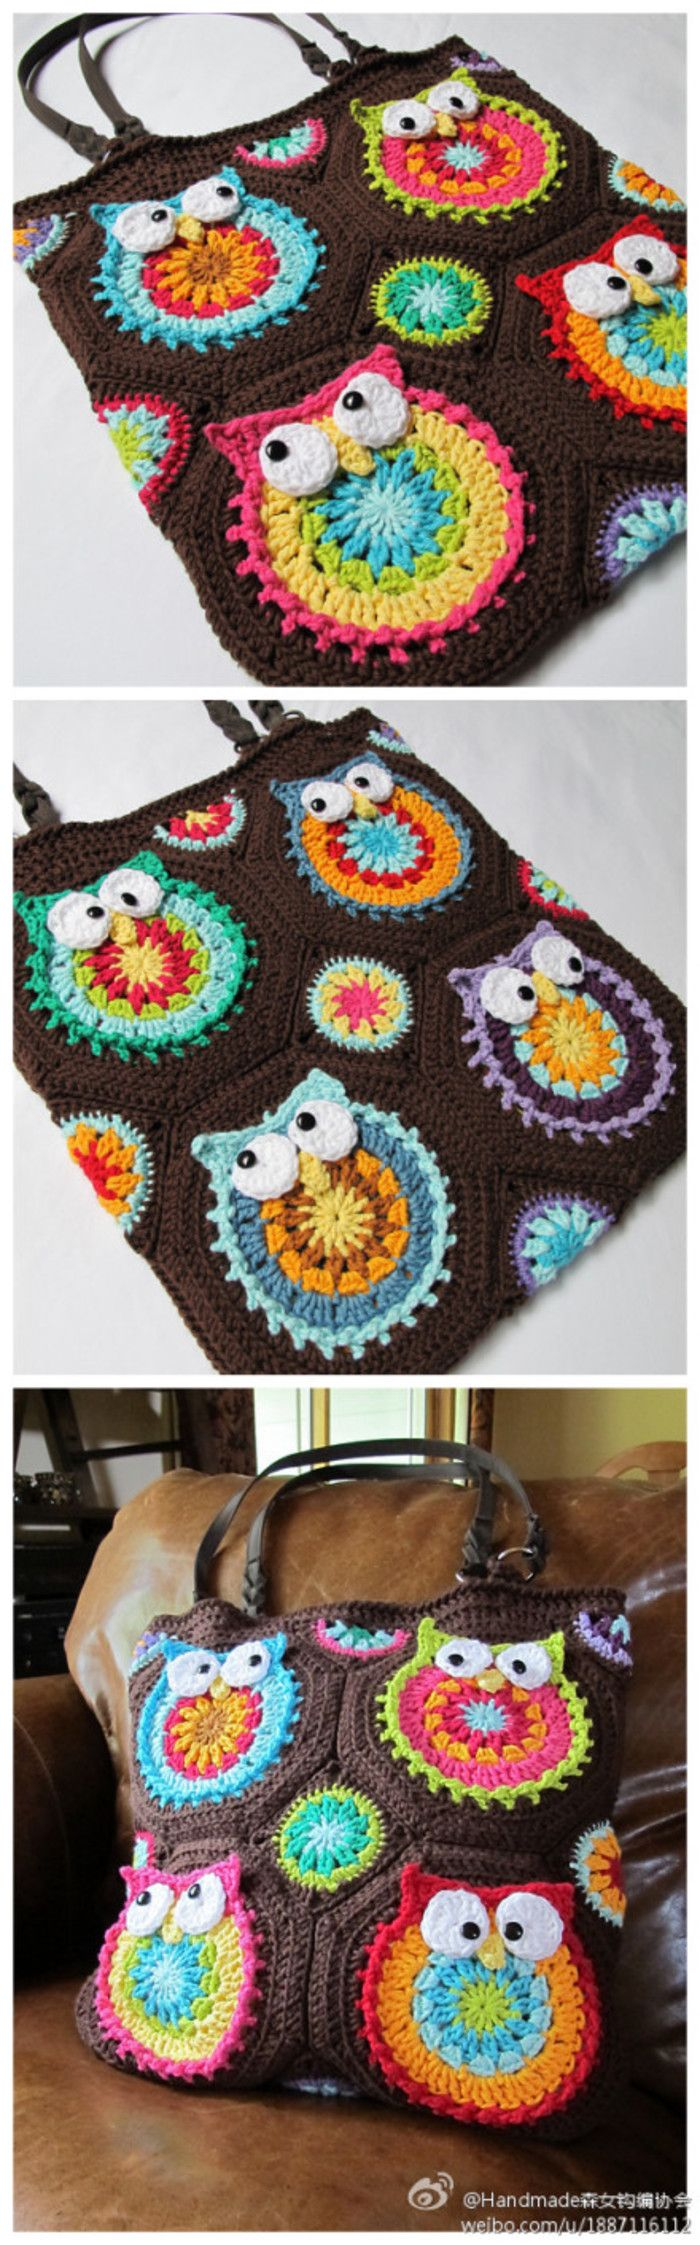 331 best always crochet bags purses holders covers images on love this owl bag my cousin would loooovvveee this bankloansurffo Image collections